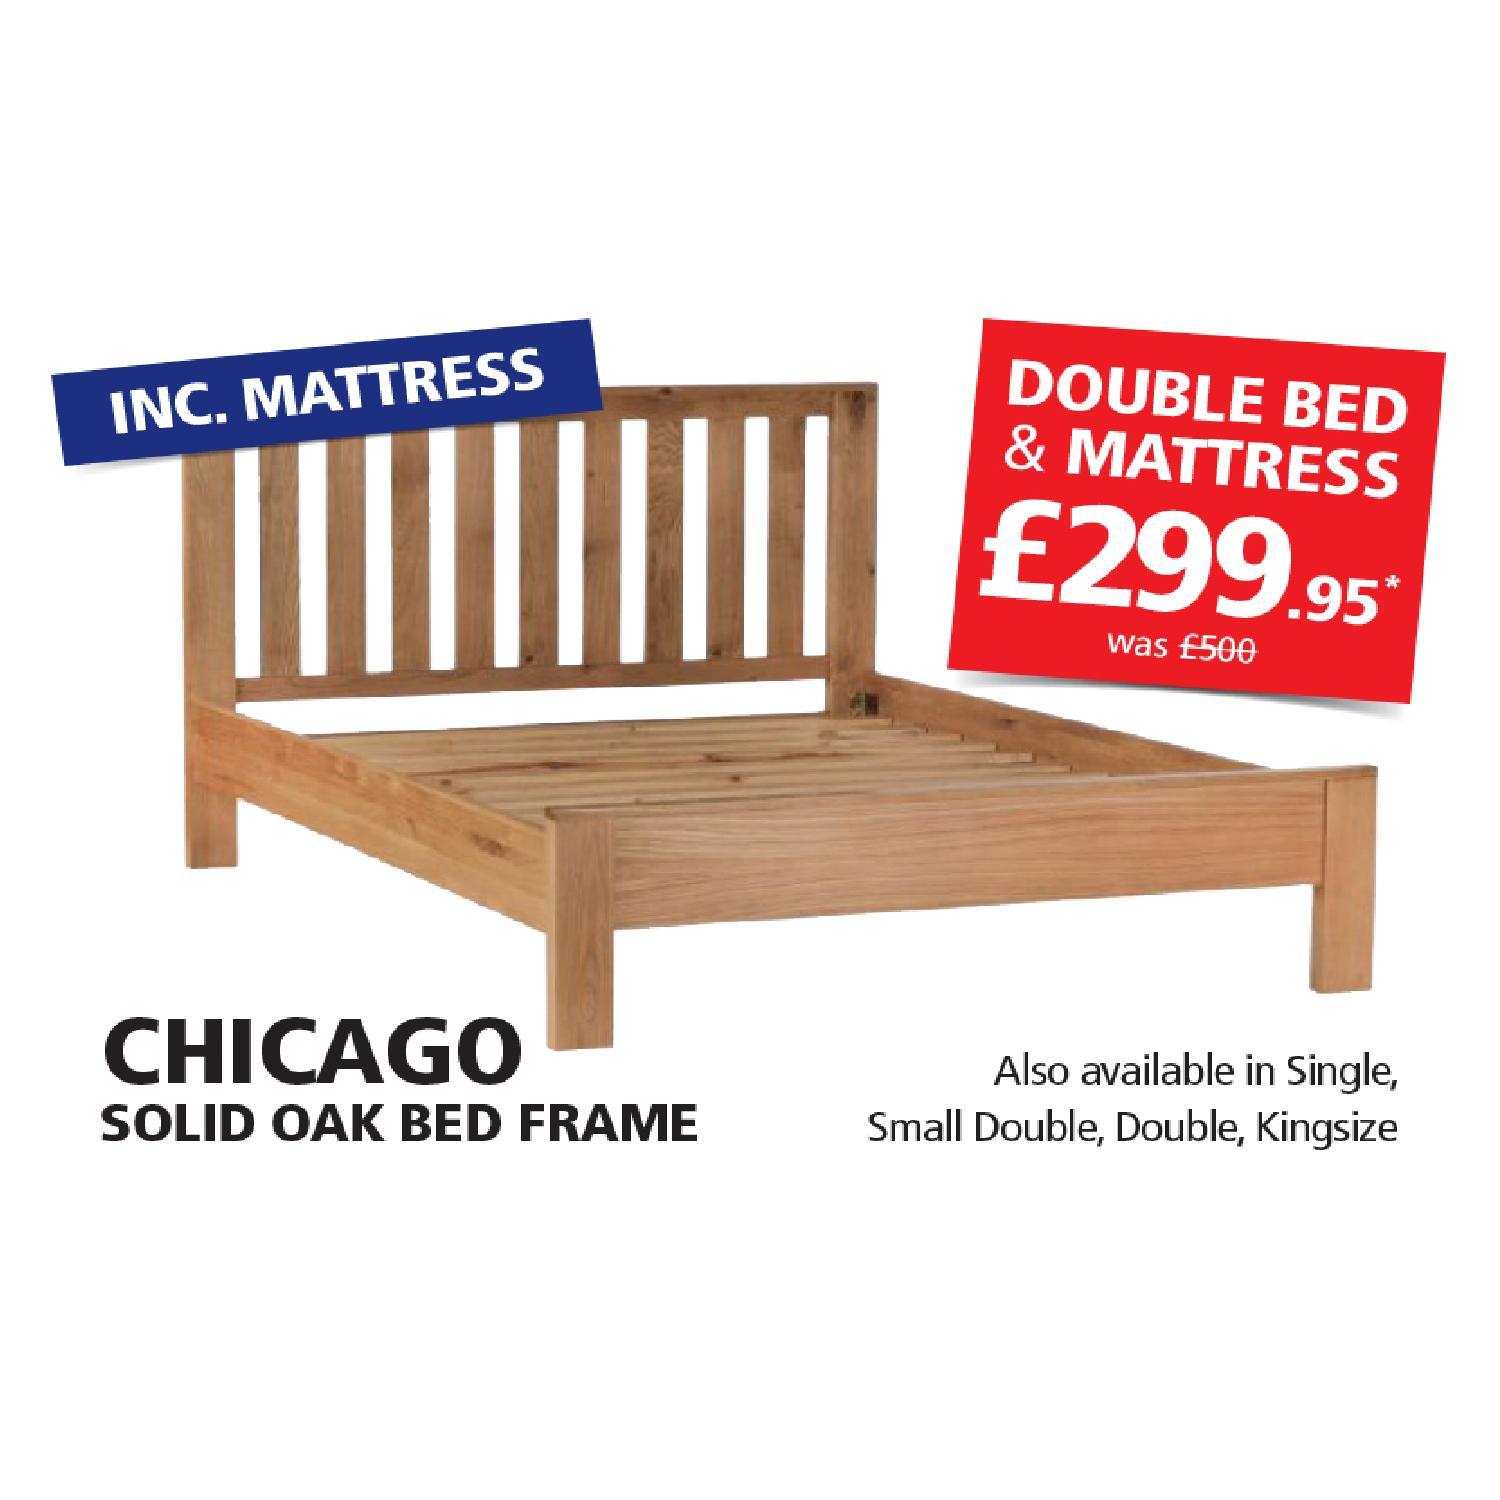 Chicago Oak Bed Frame *In Store Promotion Only* - Online Bed ...